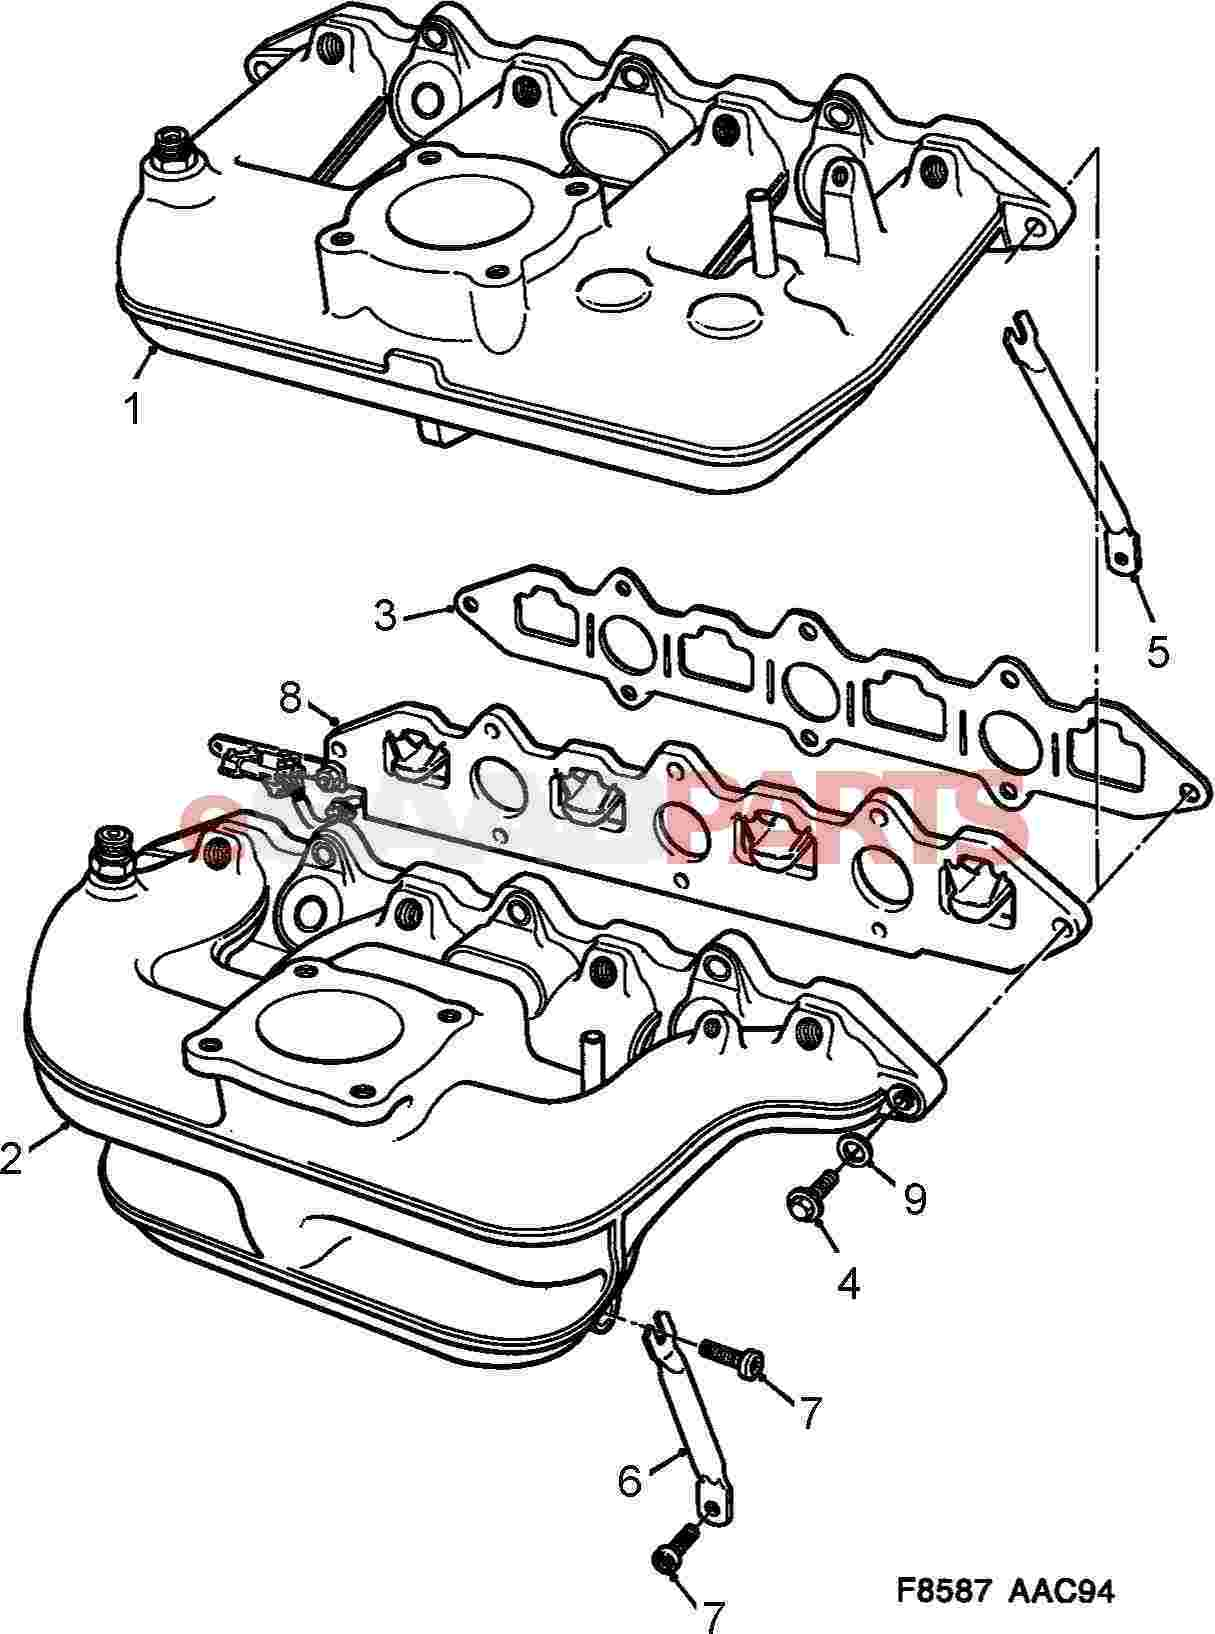 Saab 900 Wiring Diagram Also 2003 9 3 2003 Saab Fuse Box